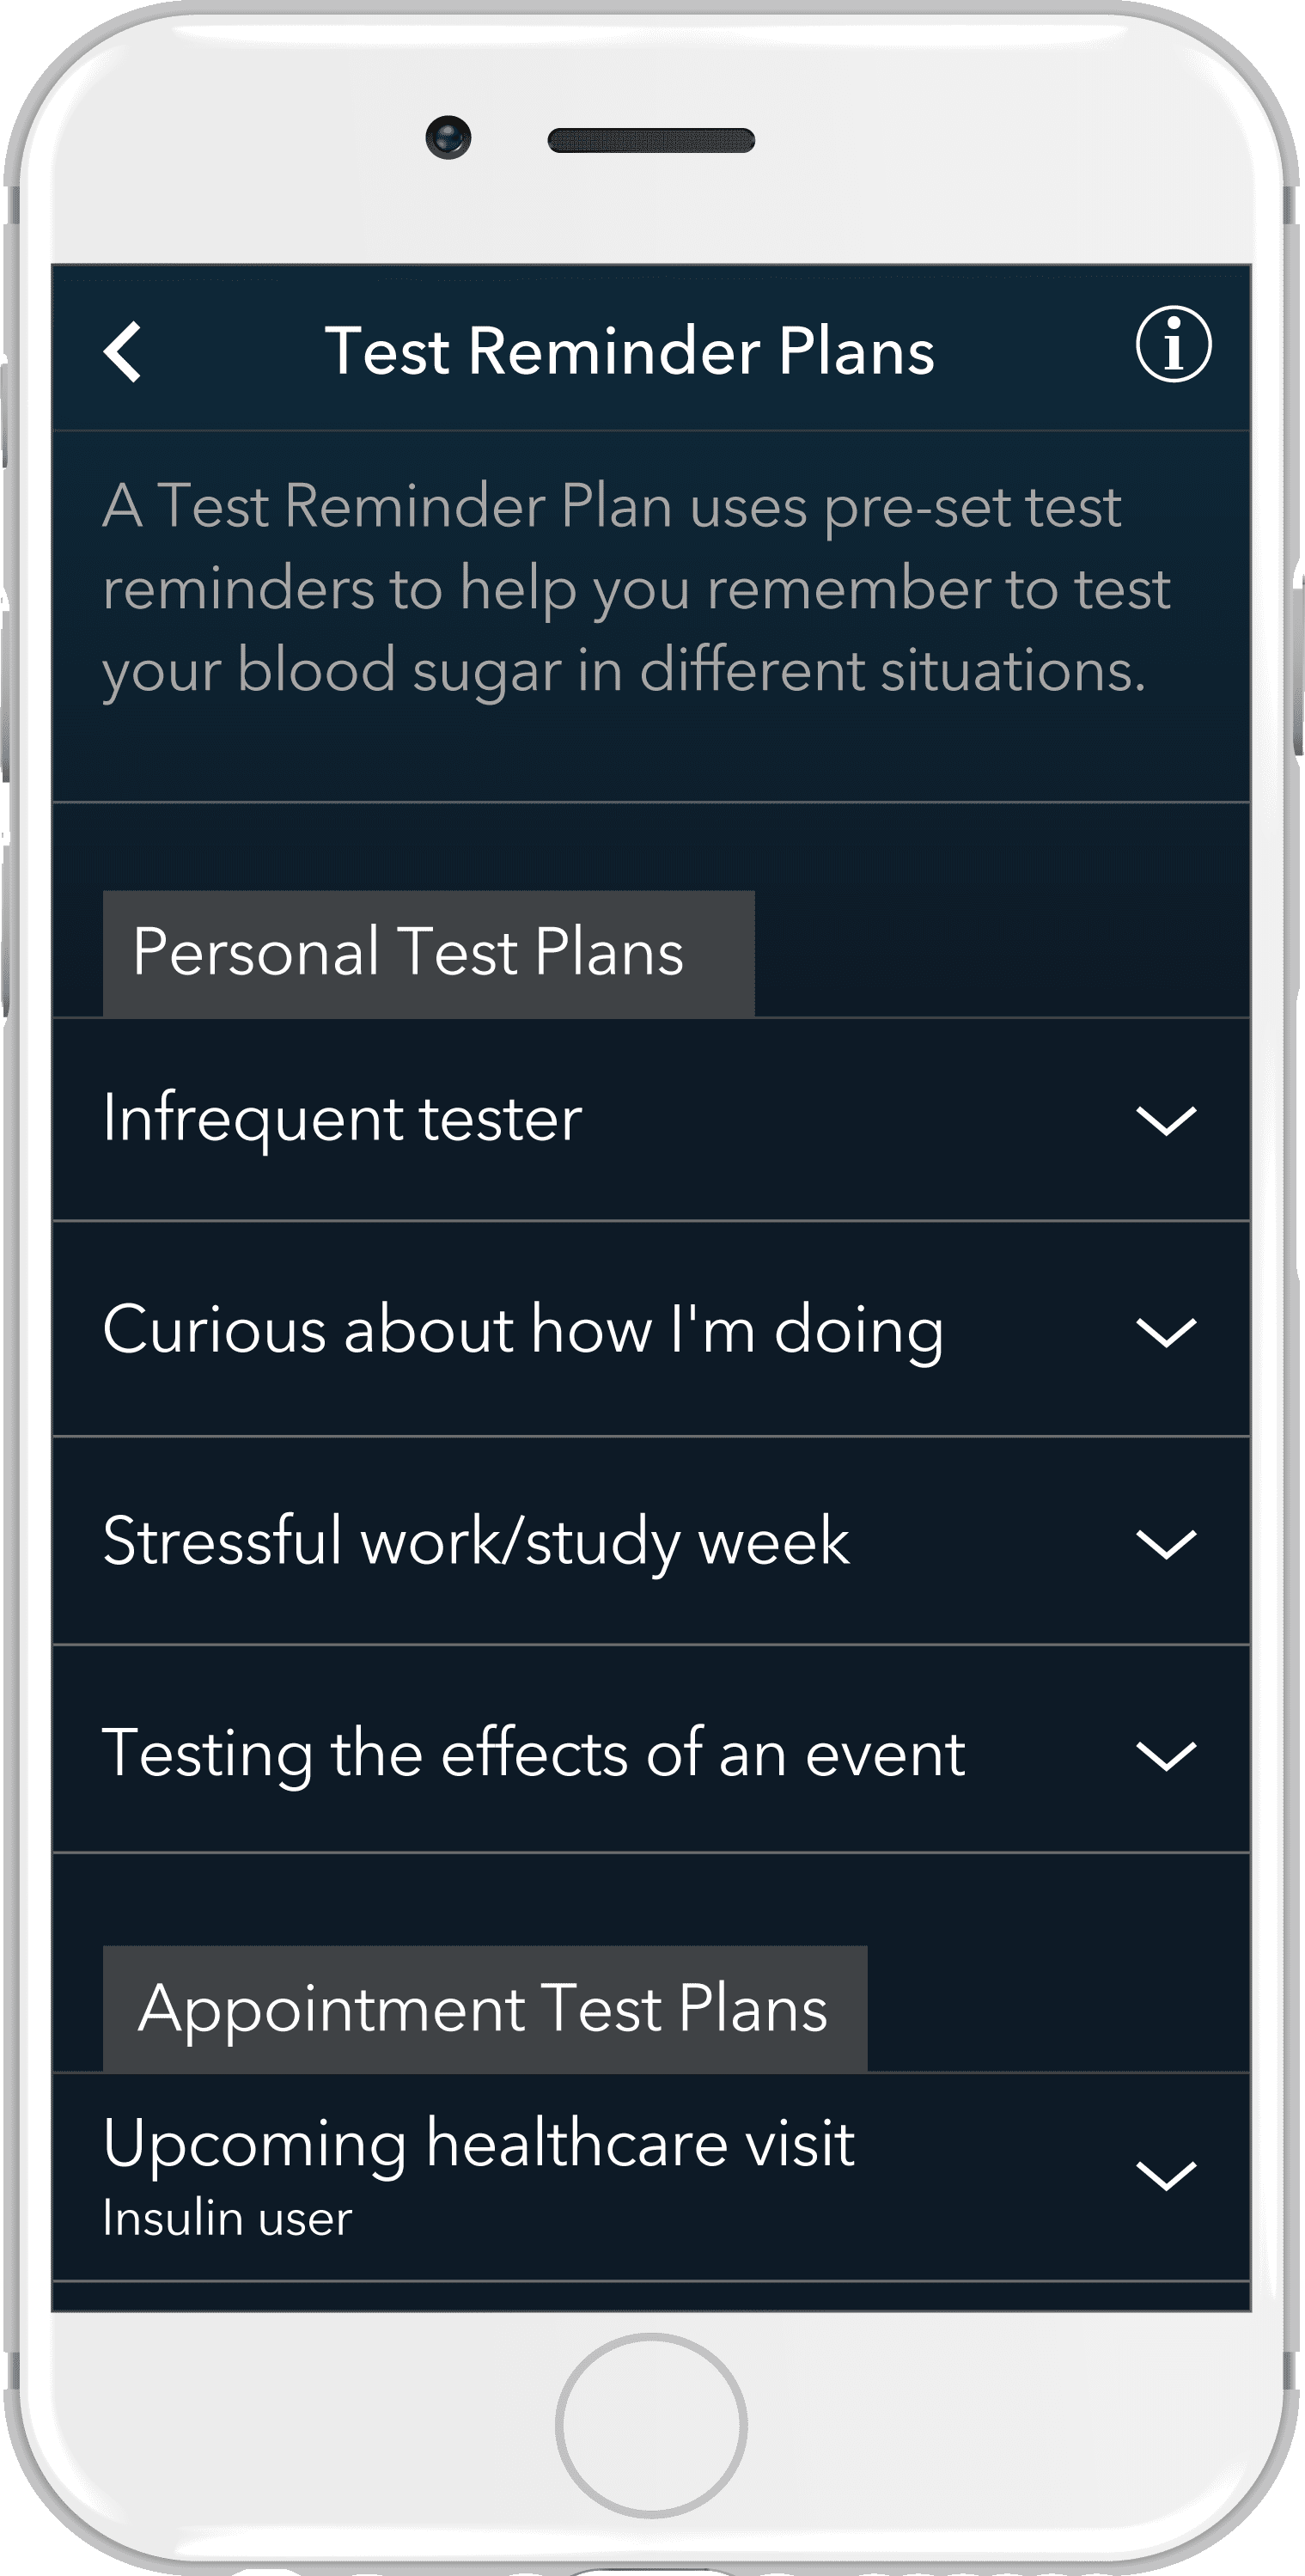 Multiple plan options available in the app